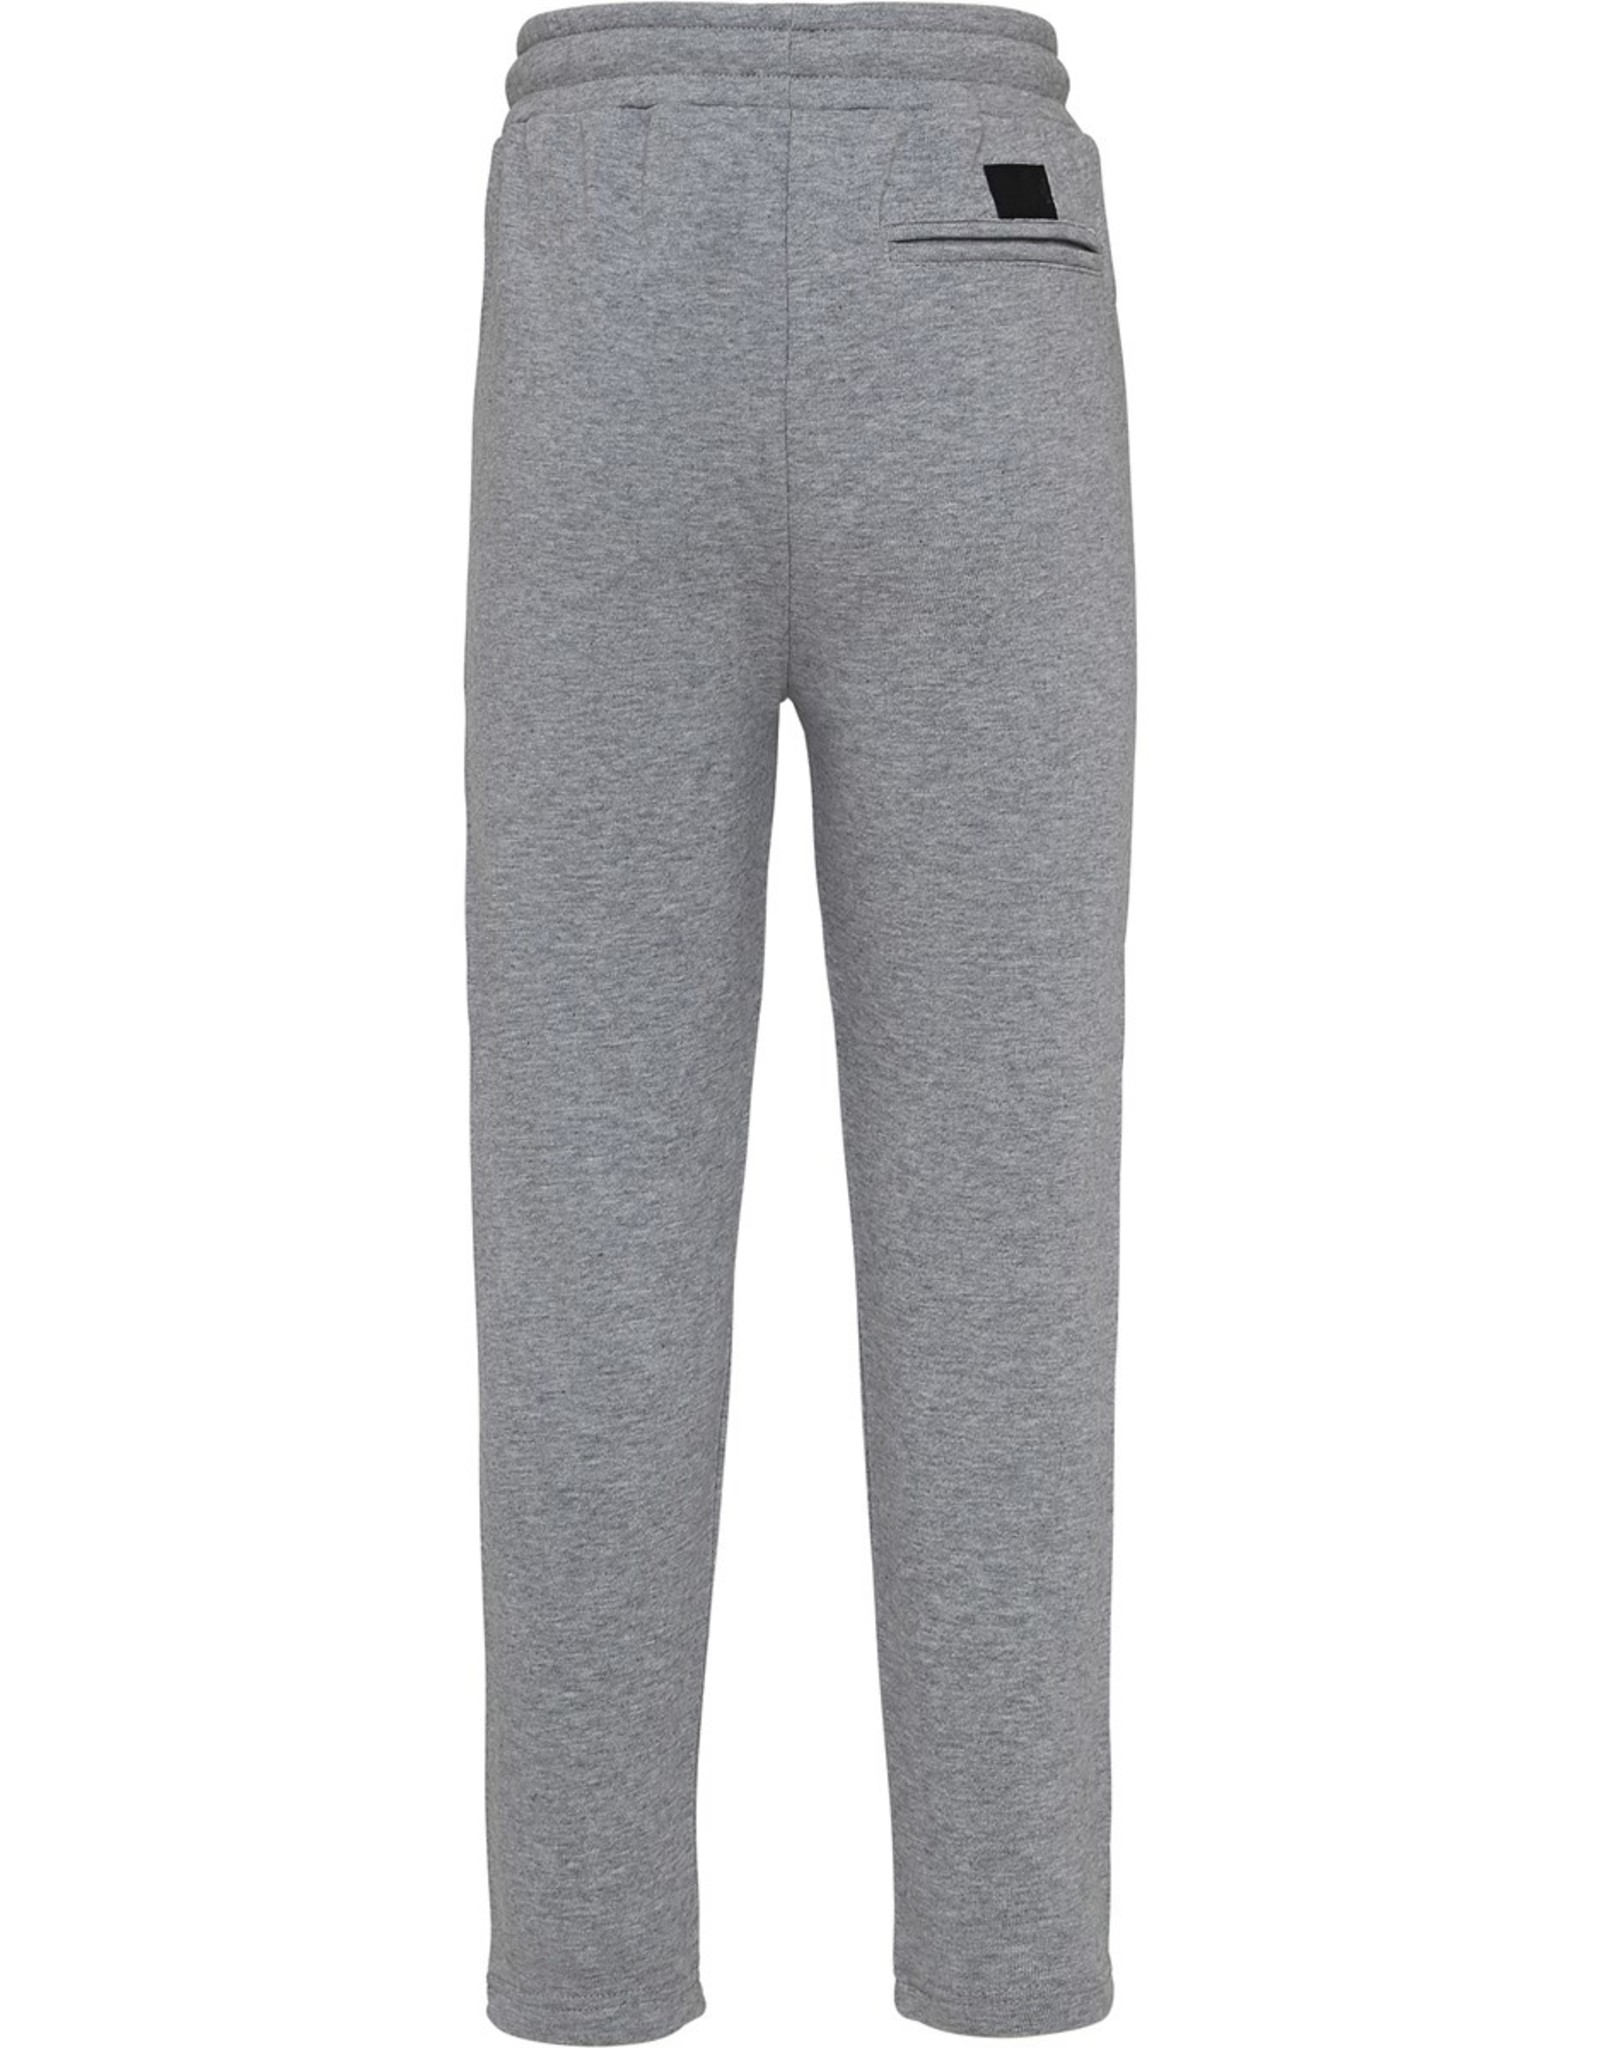 Molo Aim Joggingbroek